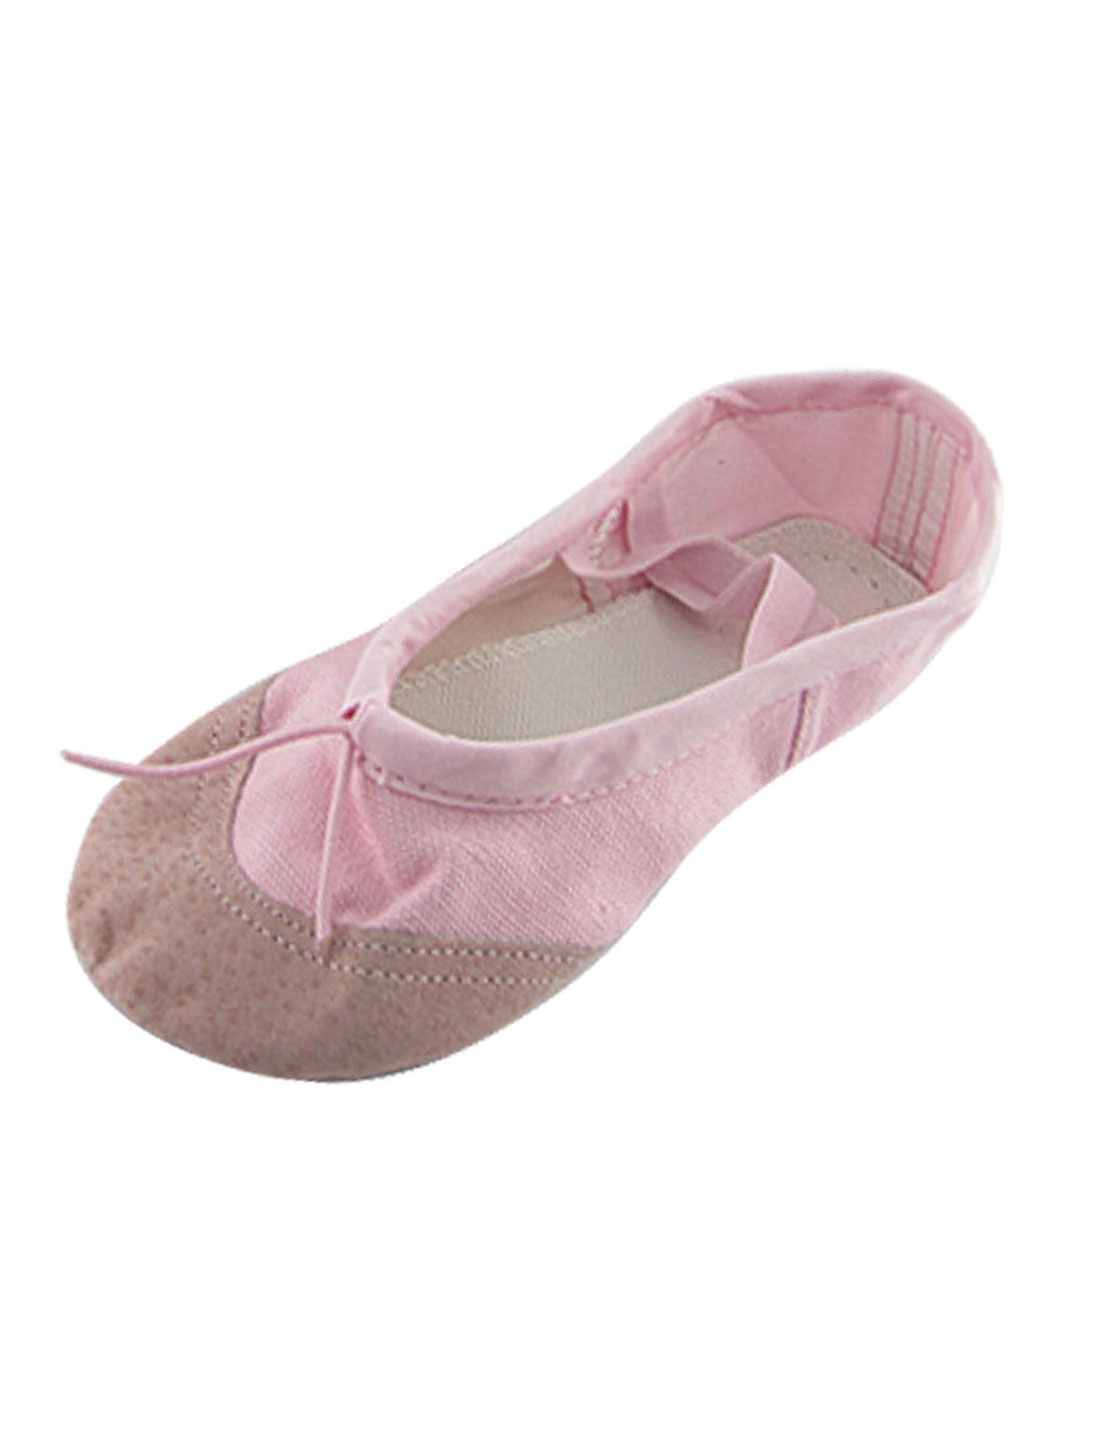 Girls-US-Sz-13-5-Pink-Canvas-Adjustable-Band-Dancing-Ballet-Shoes